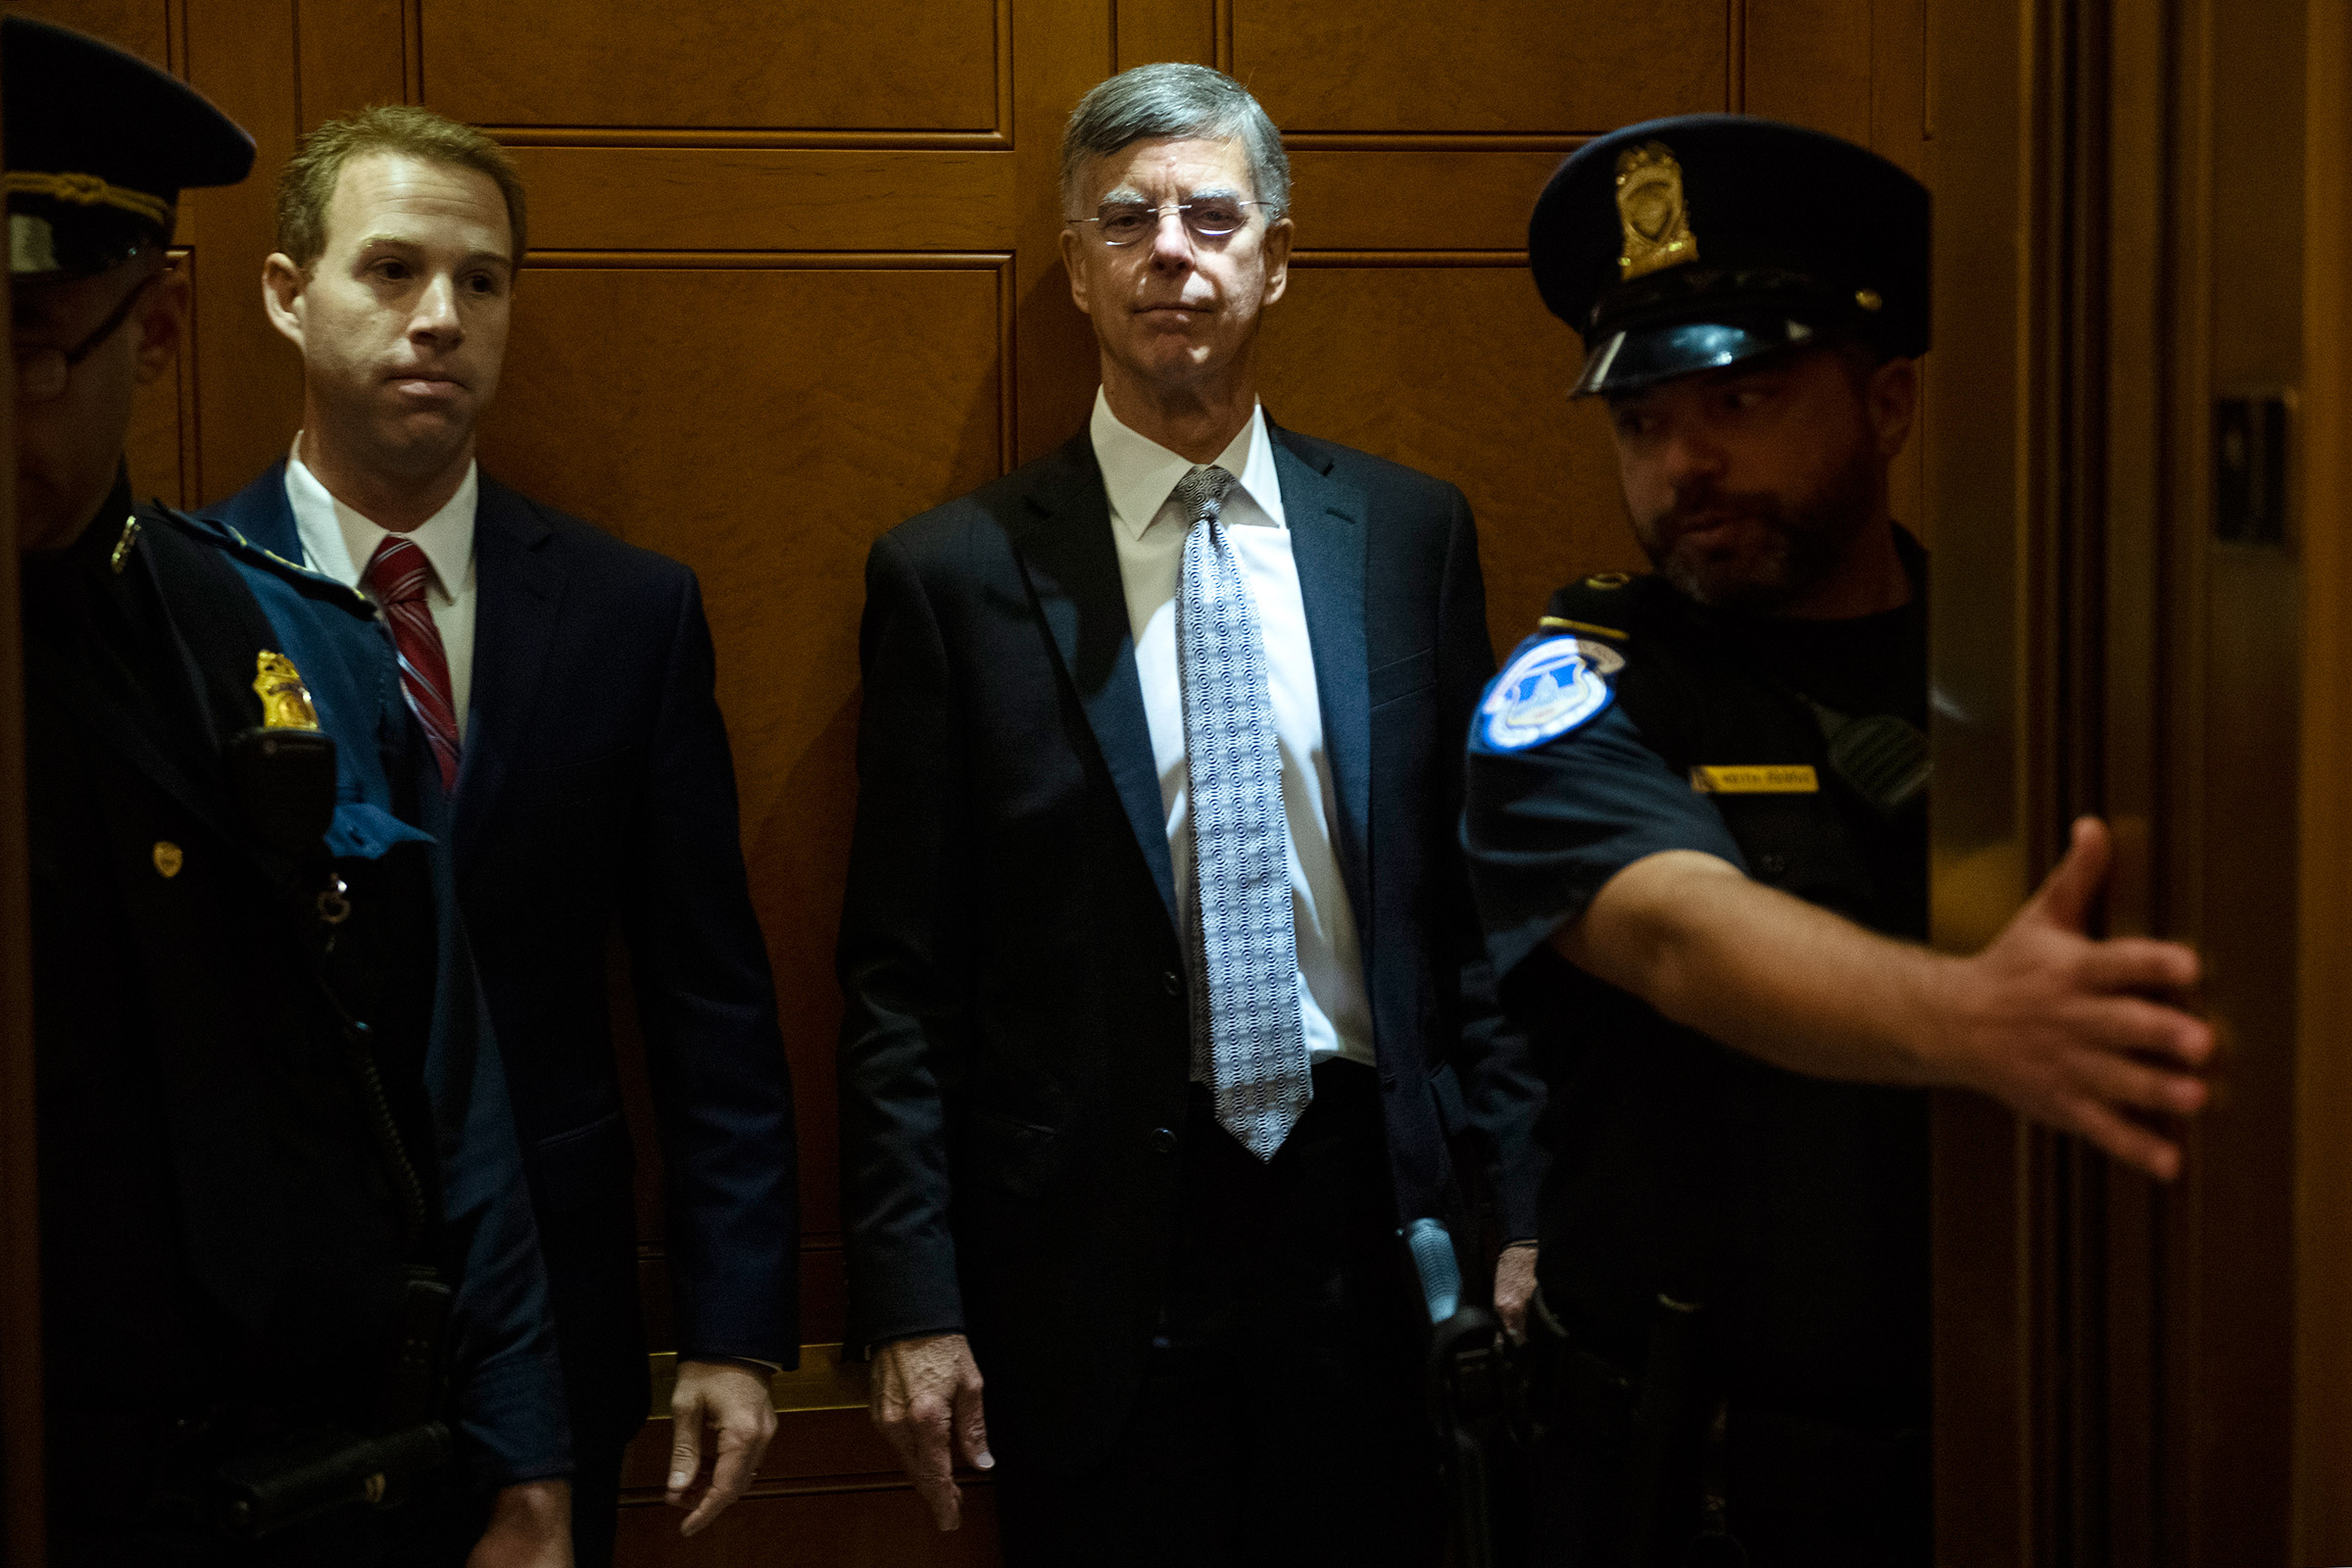 Bill Taylor, center, the acting U.S. ambassador to Ukraine, arrives at the Capitol for a deposition related to the House's impeachment inquiry on Oct. 22, 2019.